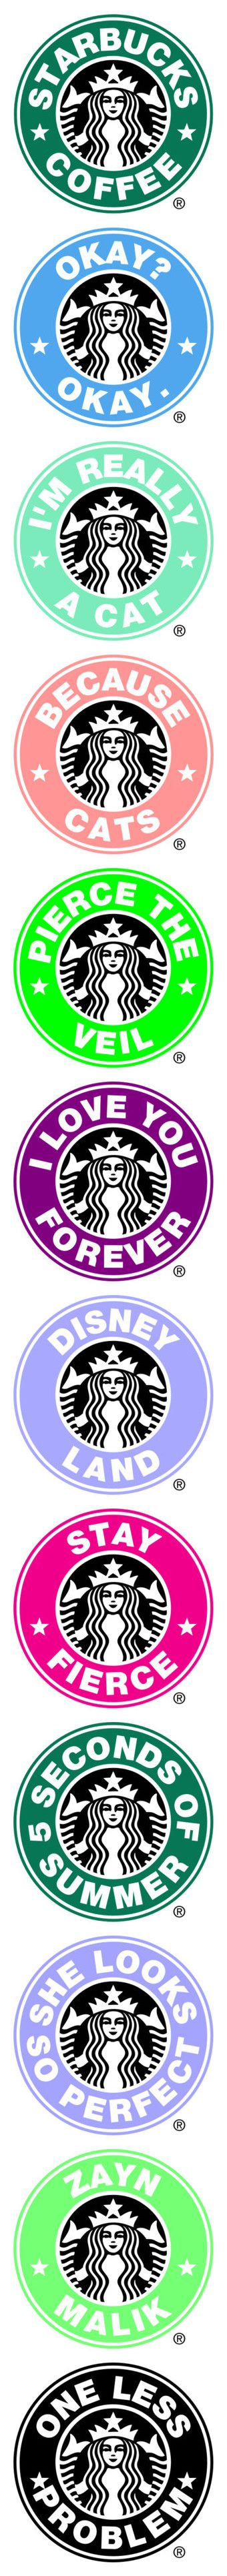 """Starbucks logo's"" by desyrae-carstensen ❤ liked on Polyvore featuring fillers, words, green fillers, logo's, pictures, starbucks logos, backgrounds, other, starbucks and bands"